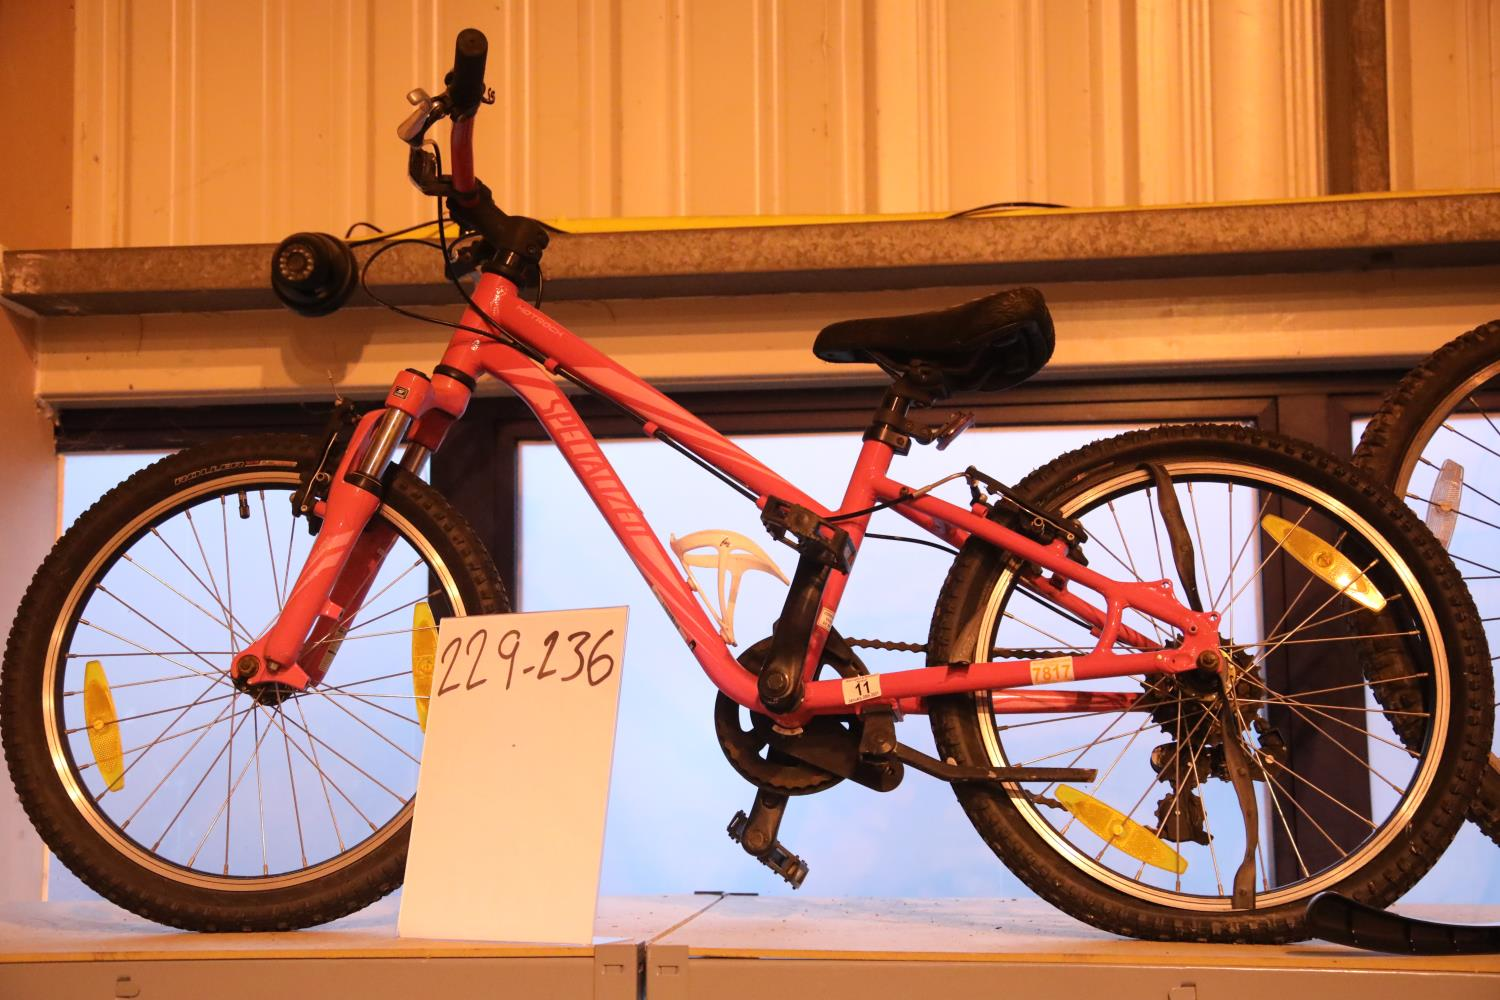 Girls specialized (Hotrock) front suspension 6 speed mountain bike. Not available for in-house P&